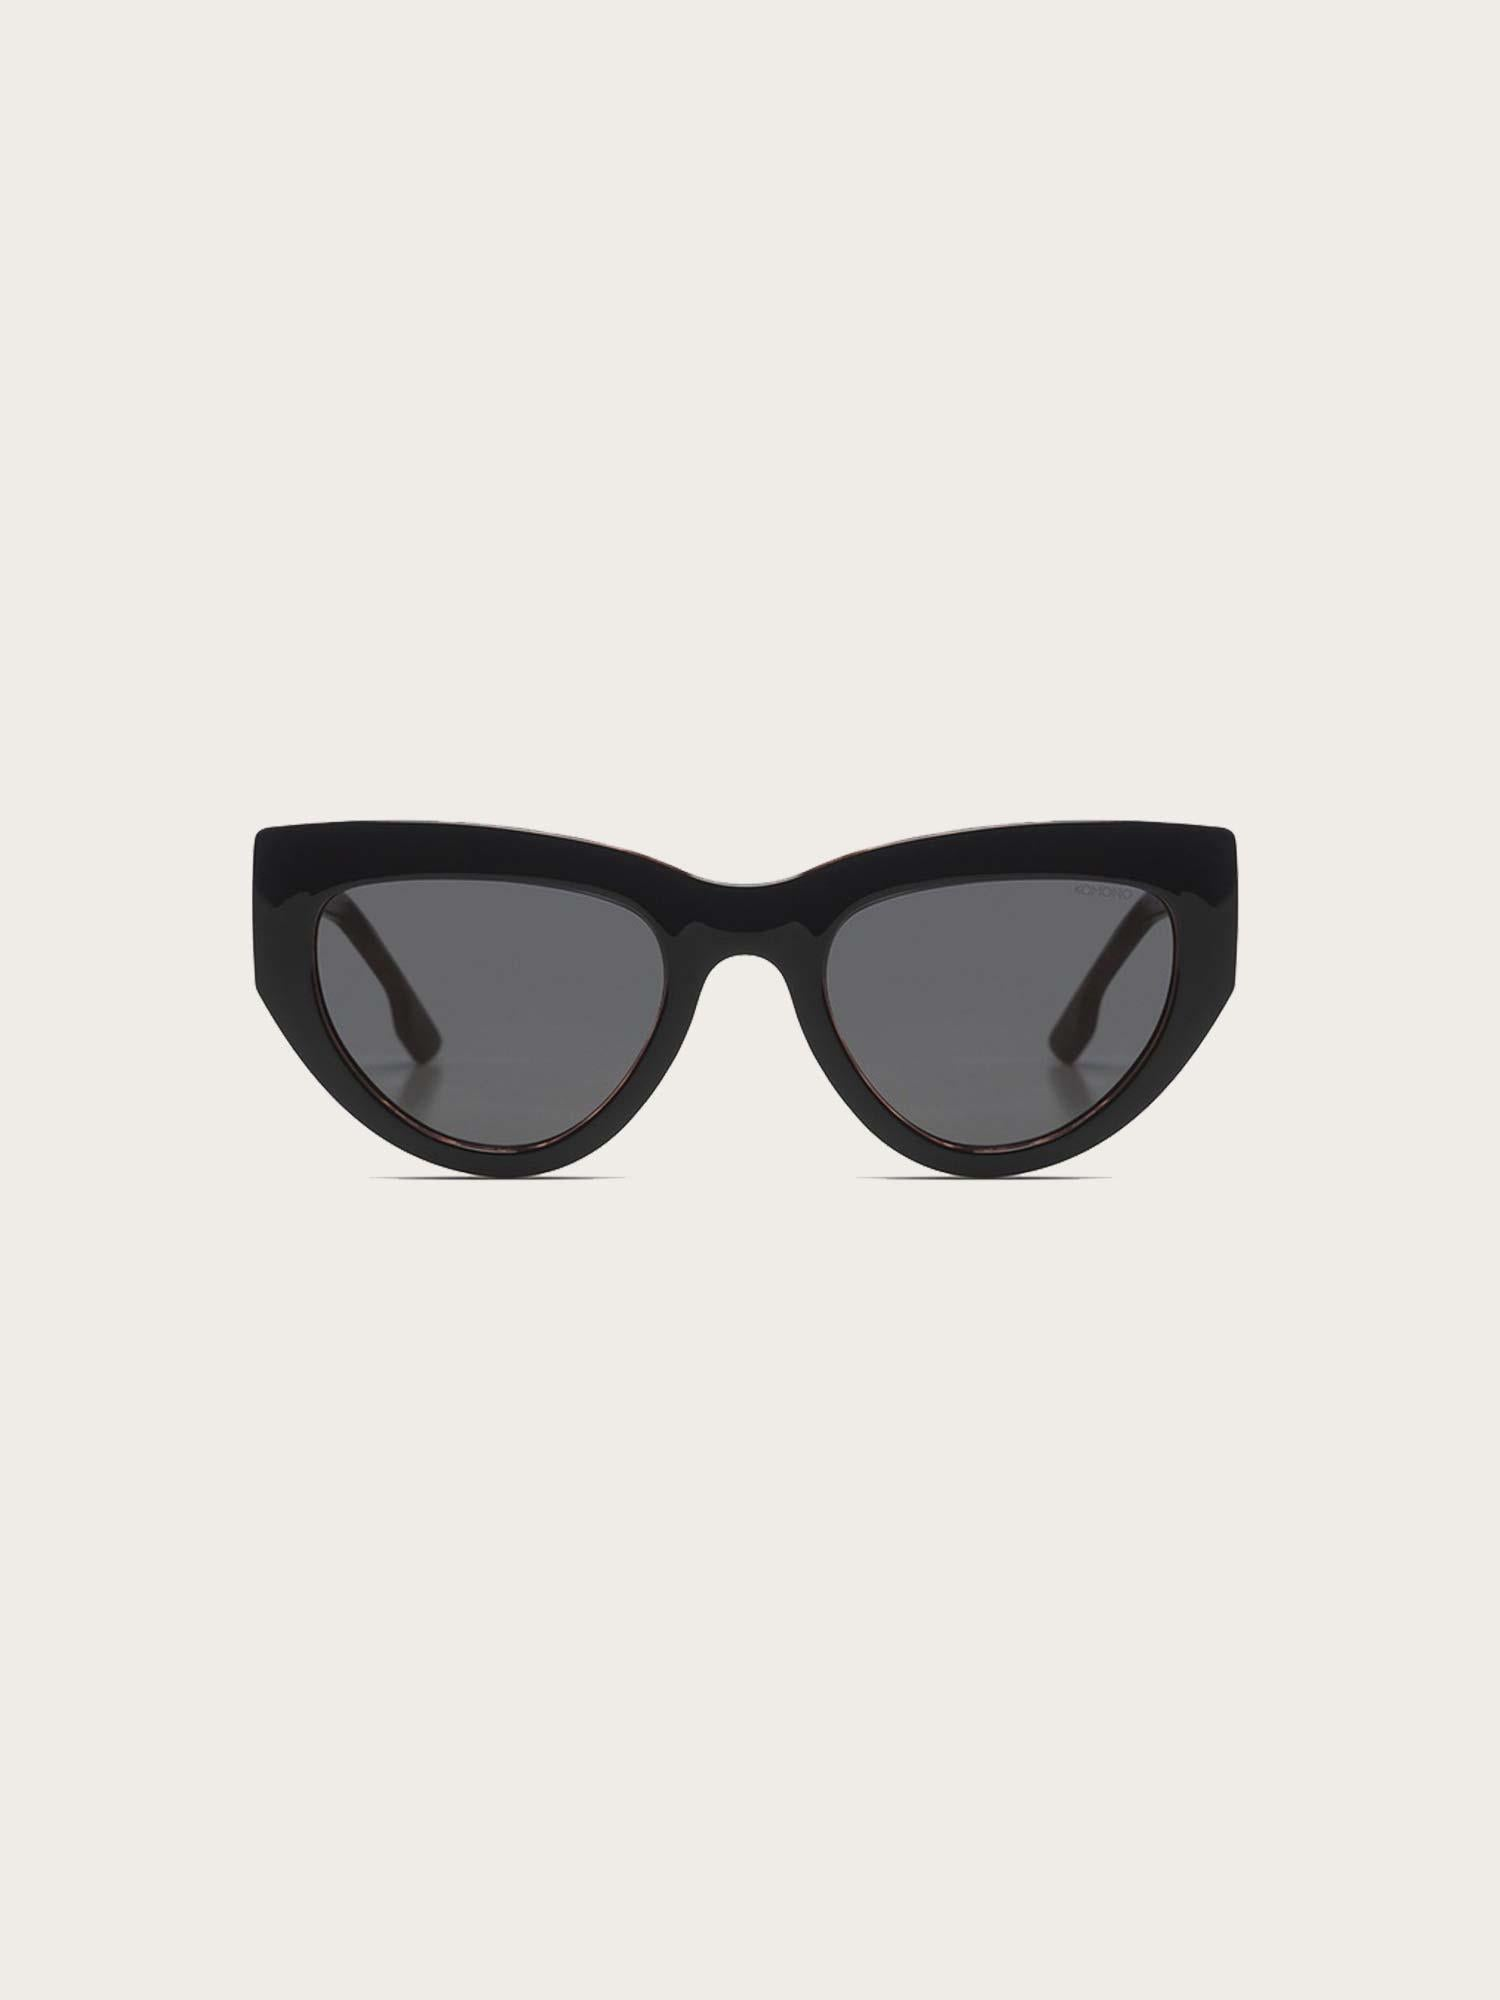 Kim Sunglasses Black Tortoise